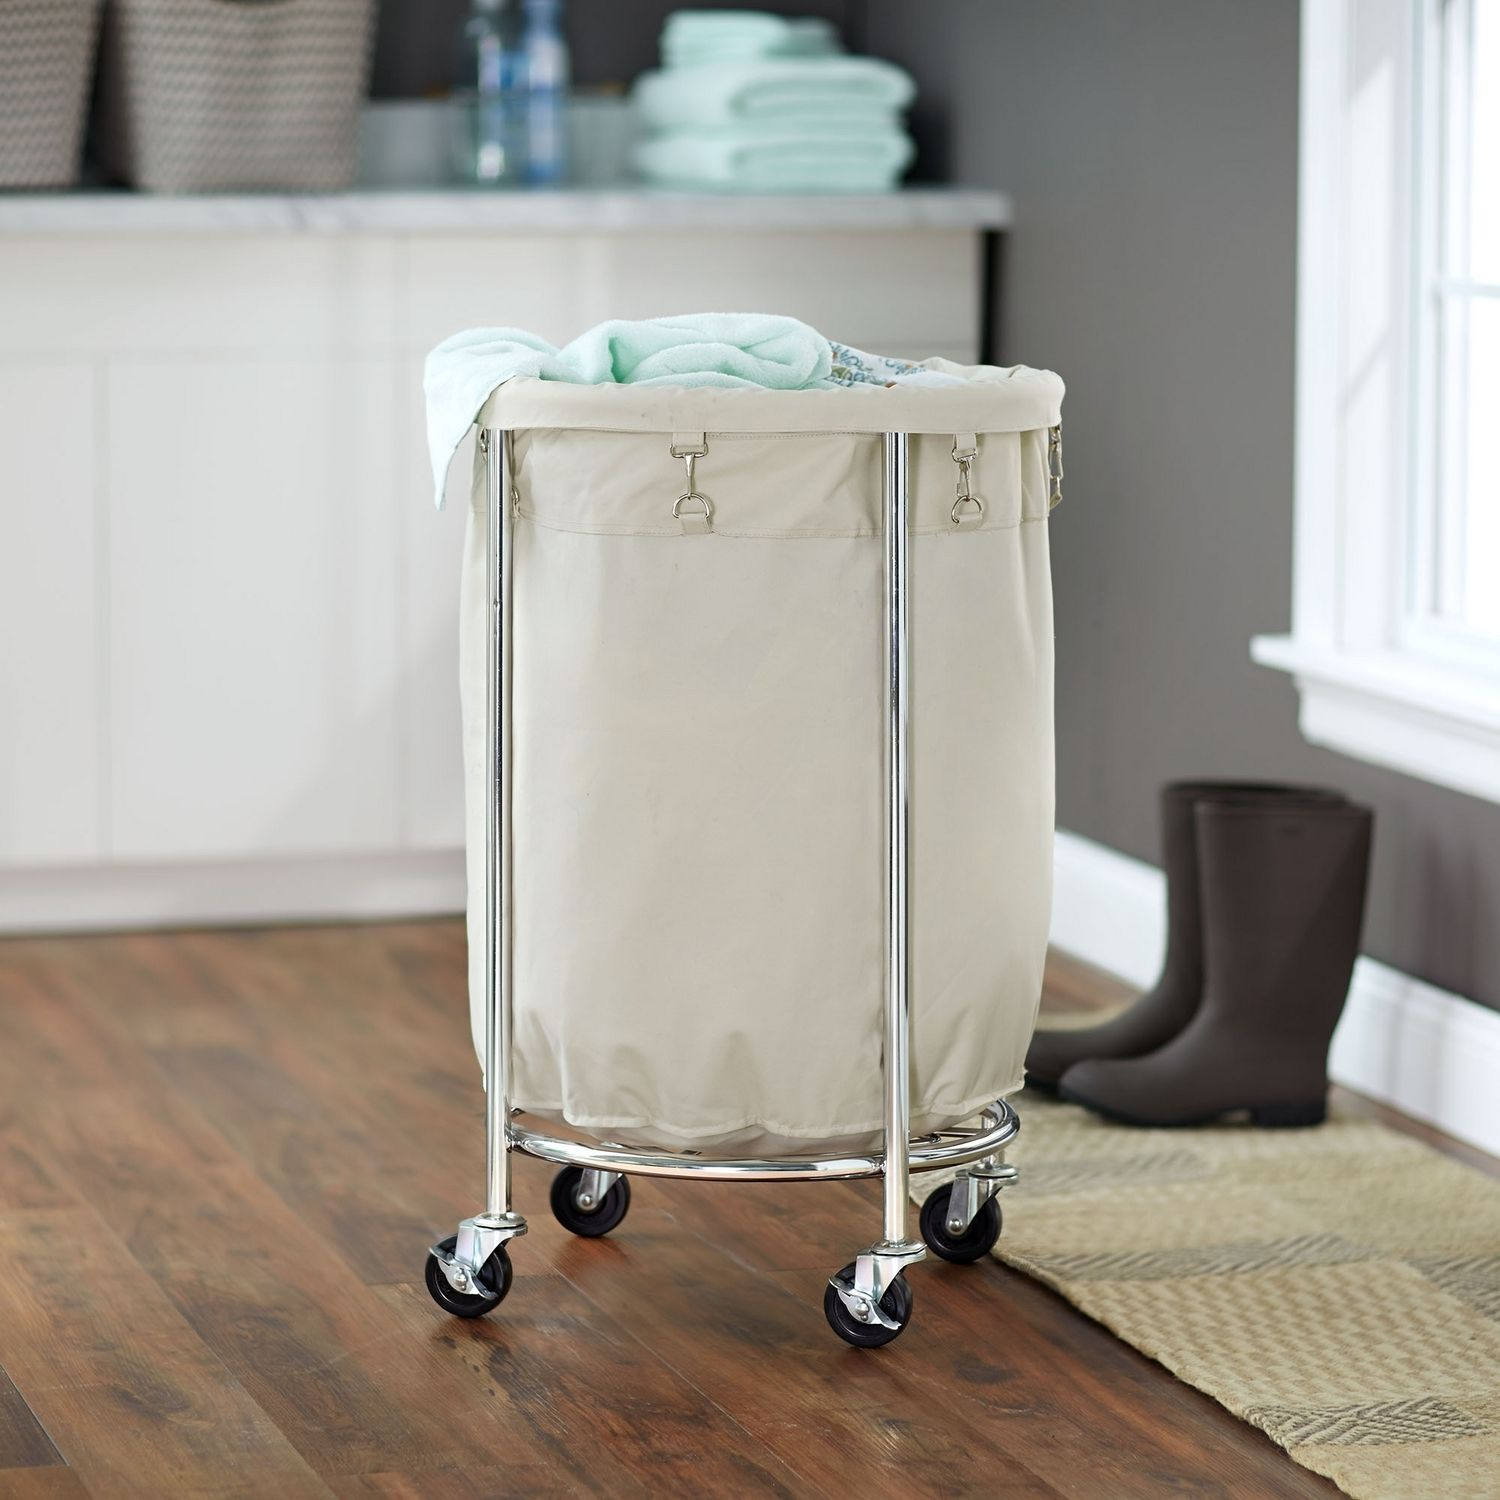 Laundry Hamper On Wheels 8211 If You Have A Room That You Do